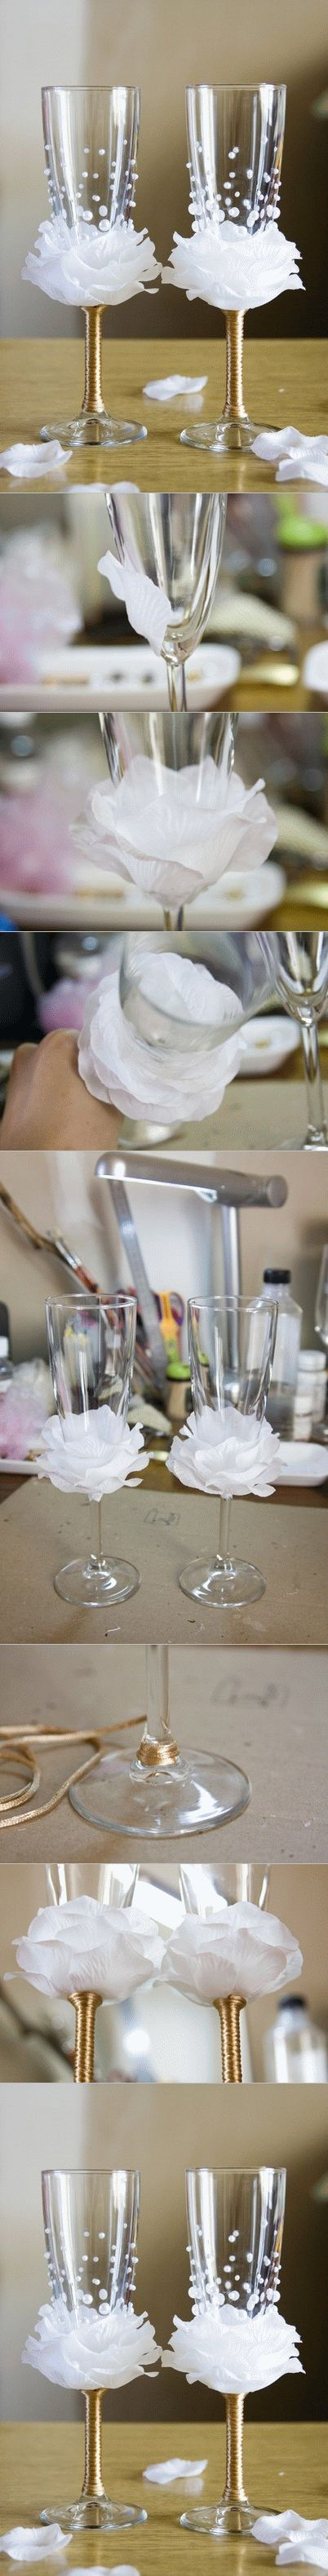 DIY Flower Bead Decorated Wine Glasses. These would be perfect for a wedding toast, bridal showers, anniversary parties, or just for a girl's night out party!